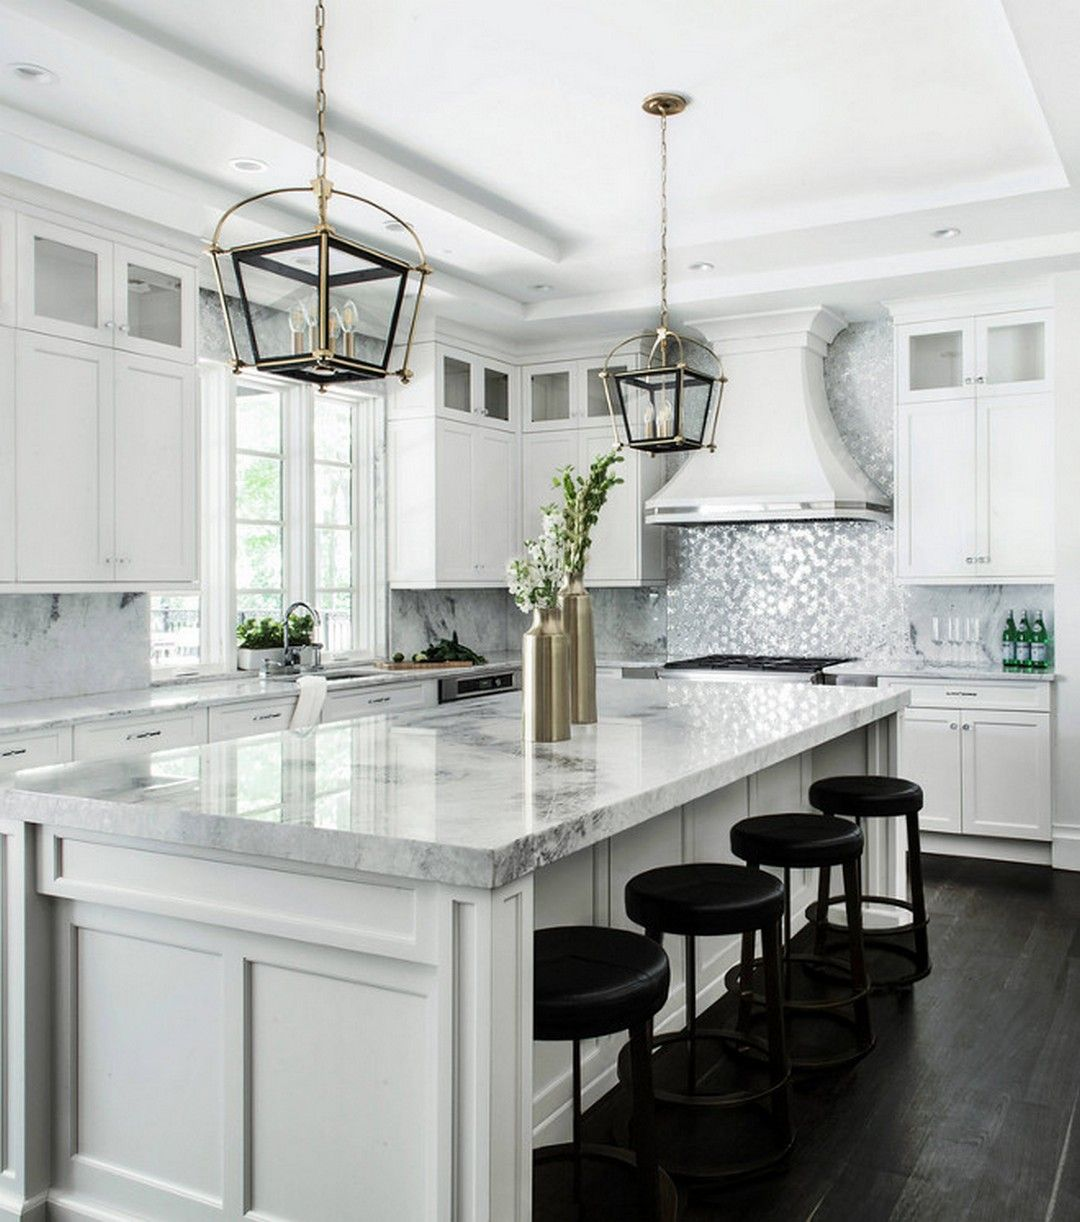 Modern White Kitchen Designs 99 Modern White Kitchen Design Cabinets And Backsplash Ideas